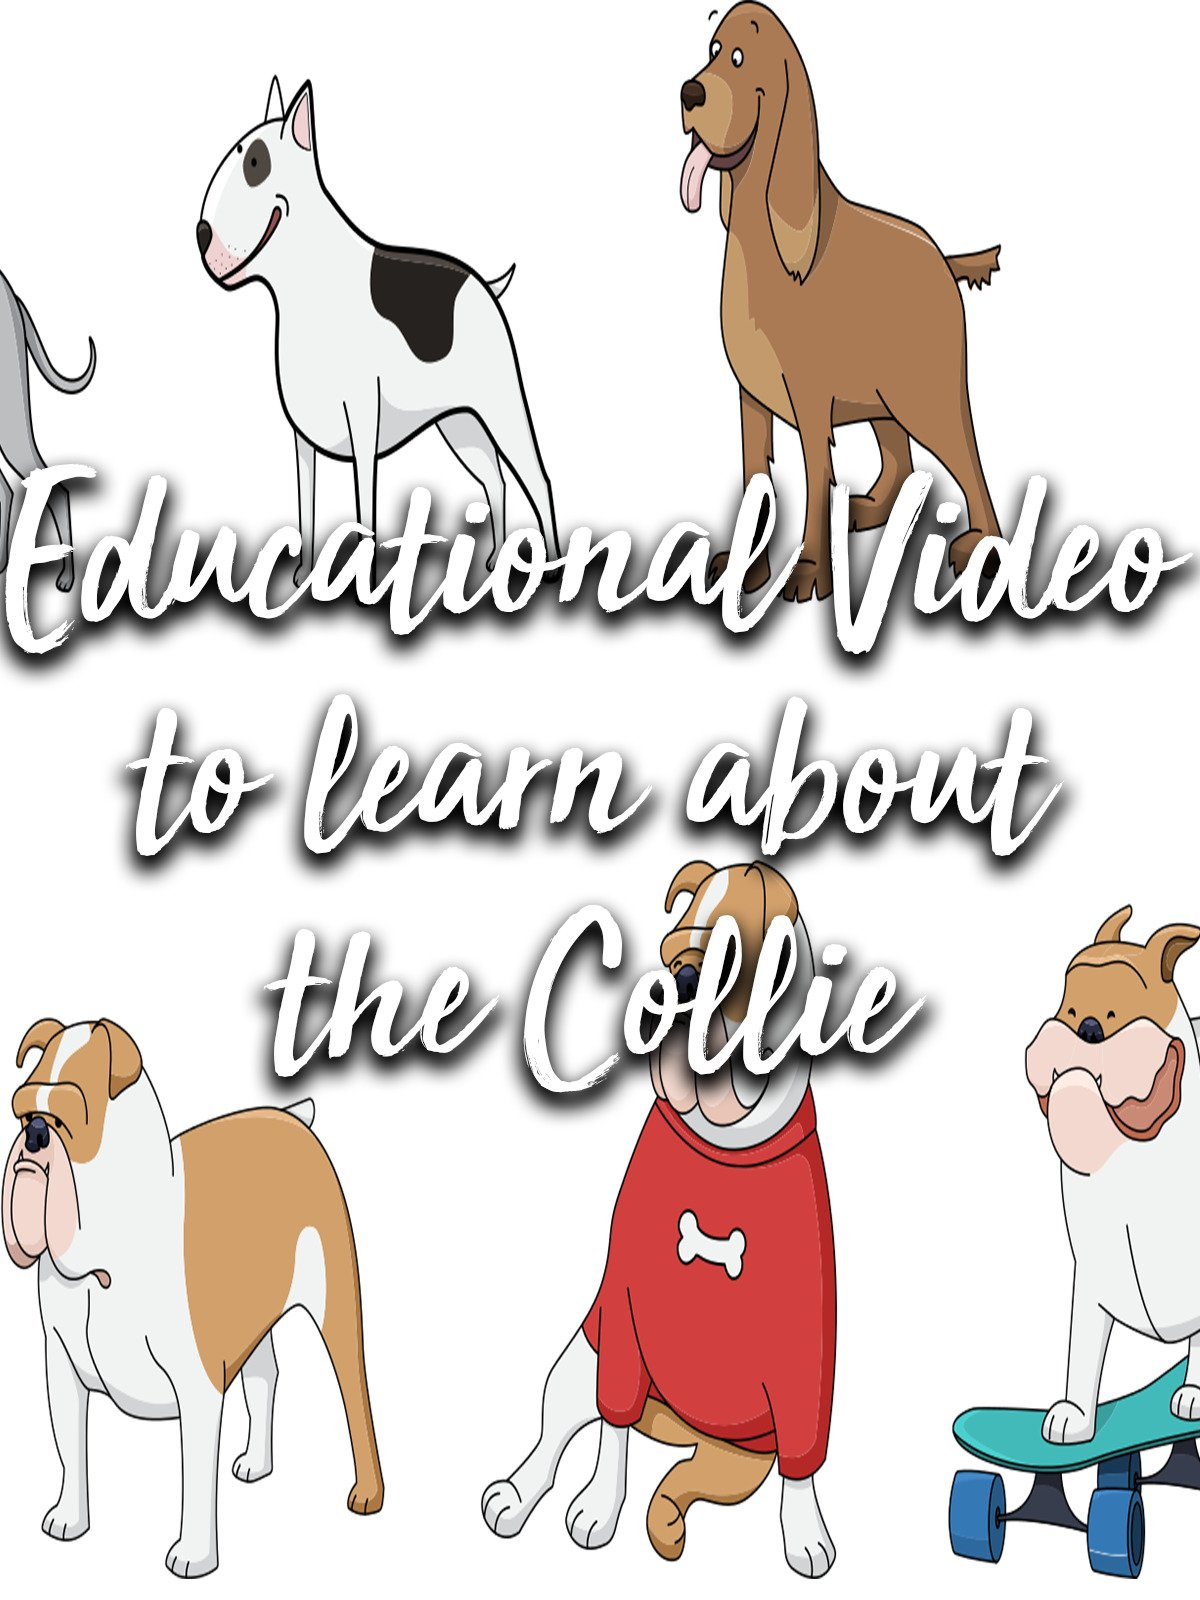 Educational Video to learn about the Collie